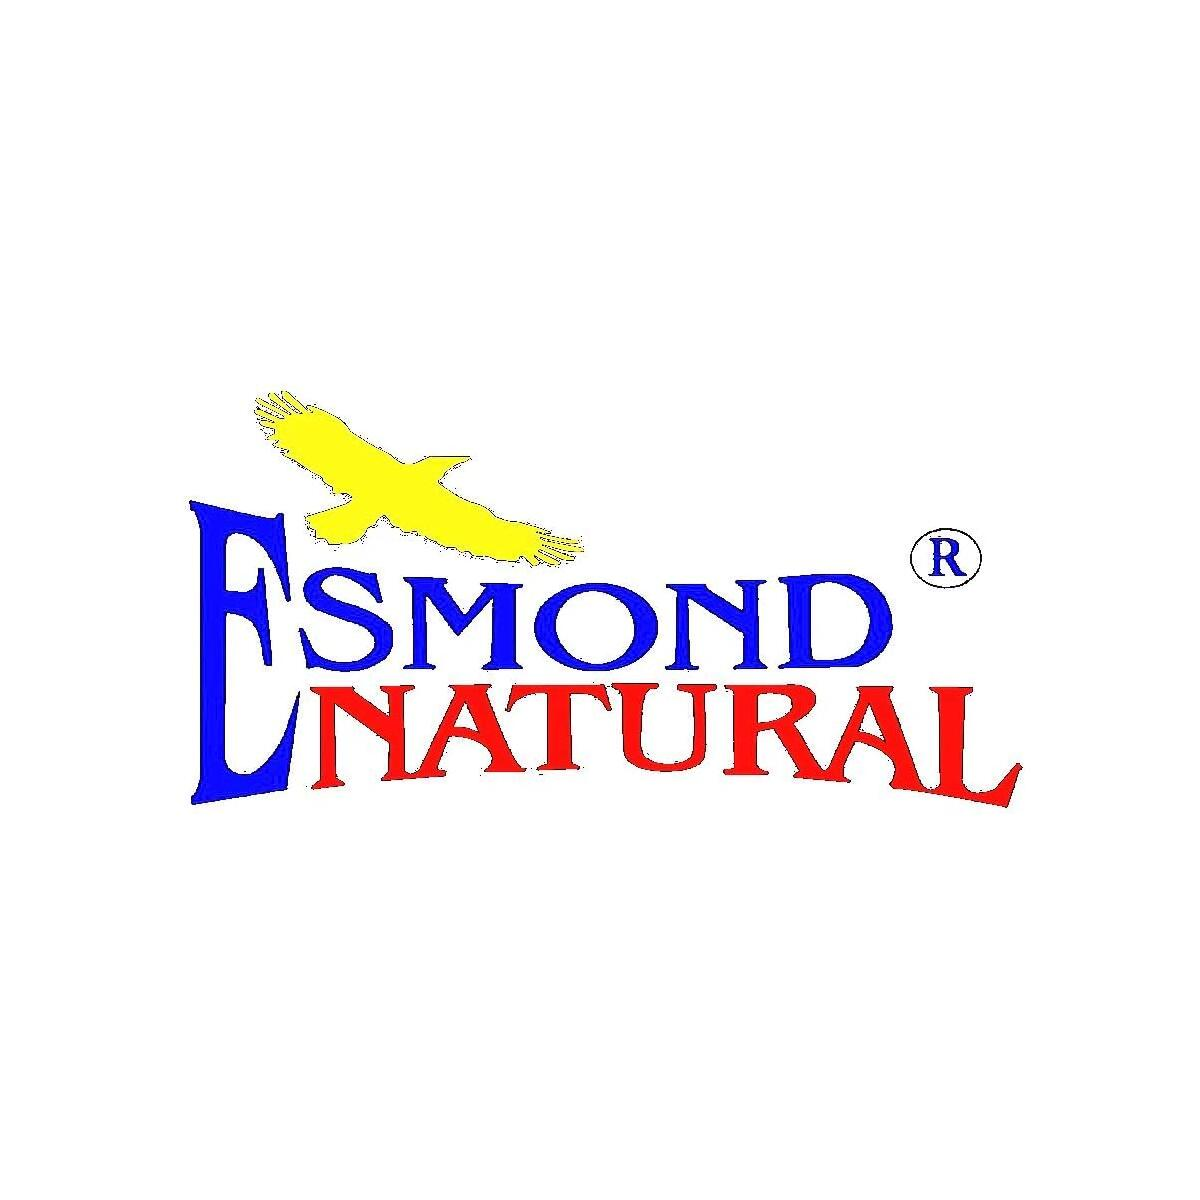 Esmond Natural: Oyster, Goji & Licorice Root Complex, GMP, Natural Product Assn Certified, Made in USA-60 Capsules